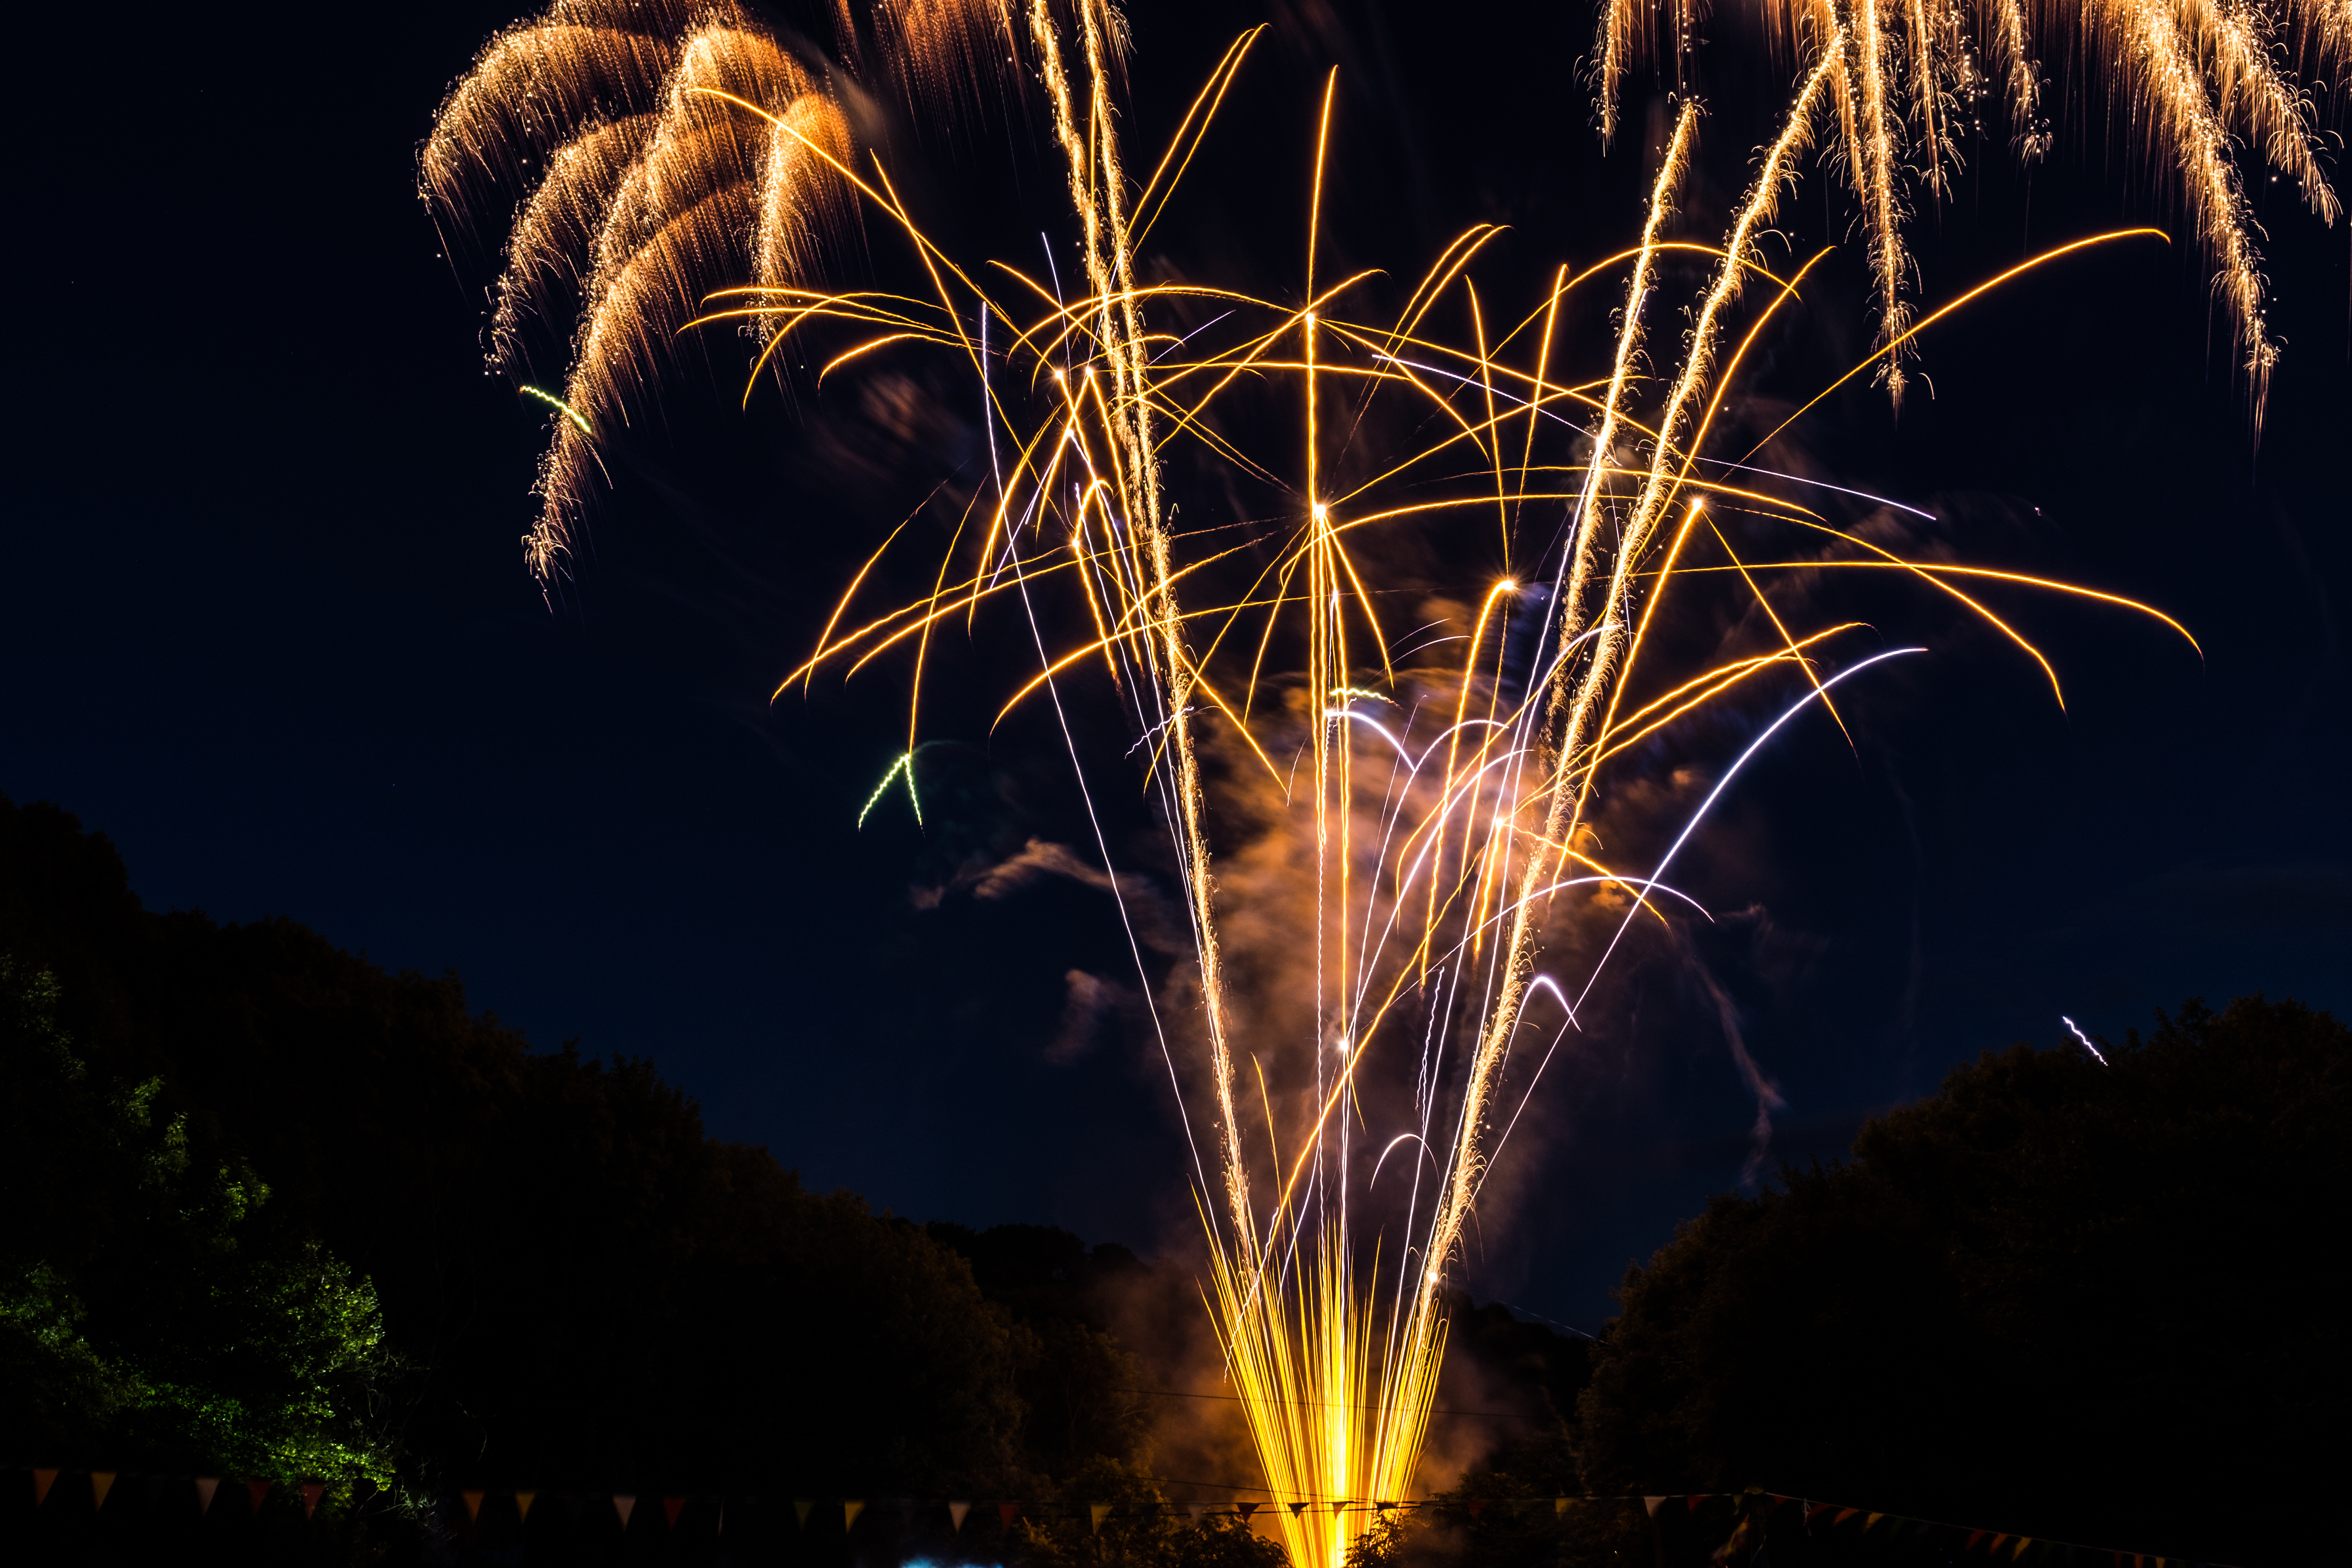 Yellow Fireworks during Night Time, Blast, Gold, Sky, Pyrotechnics, HQ Photo